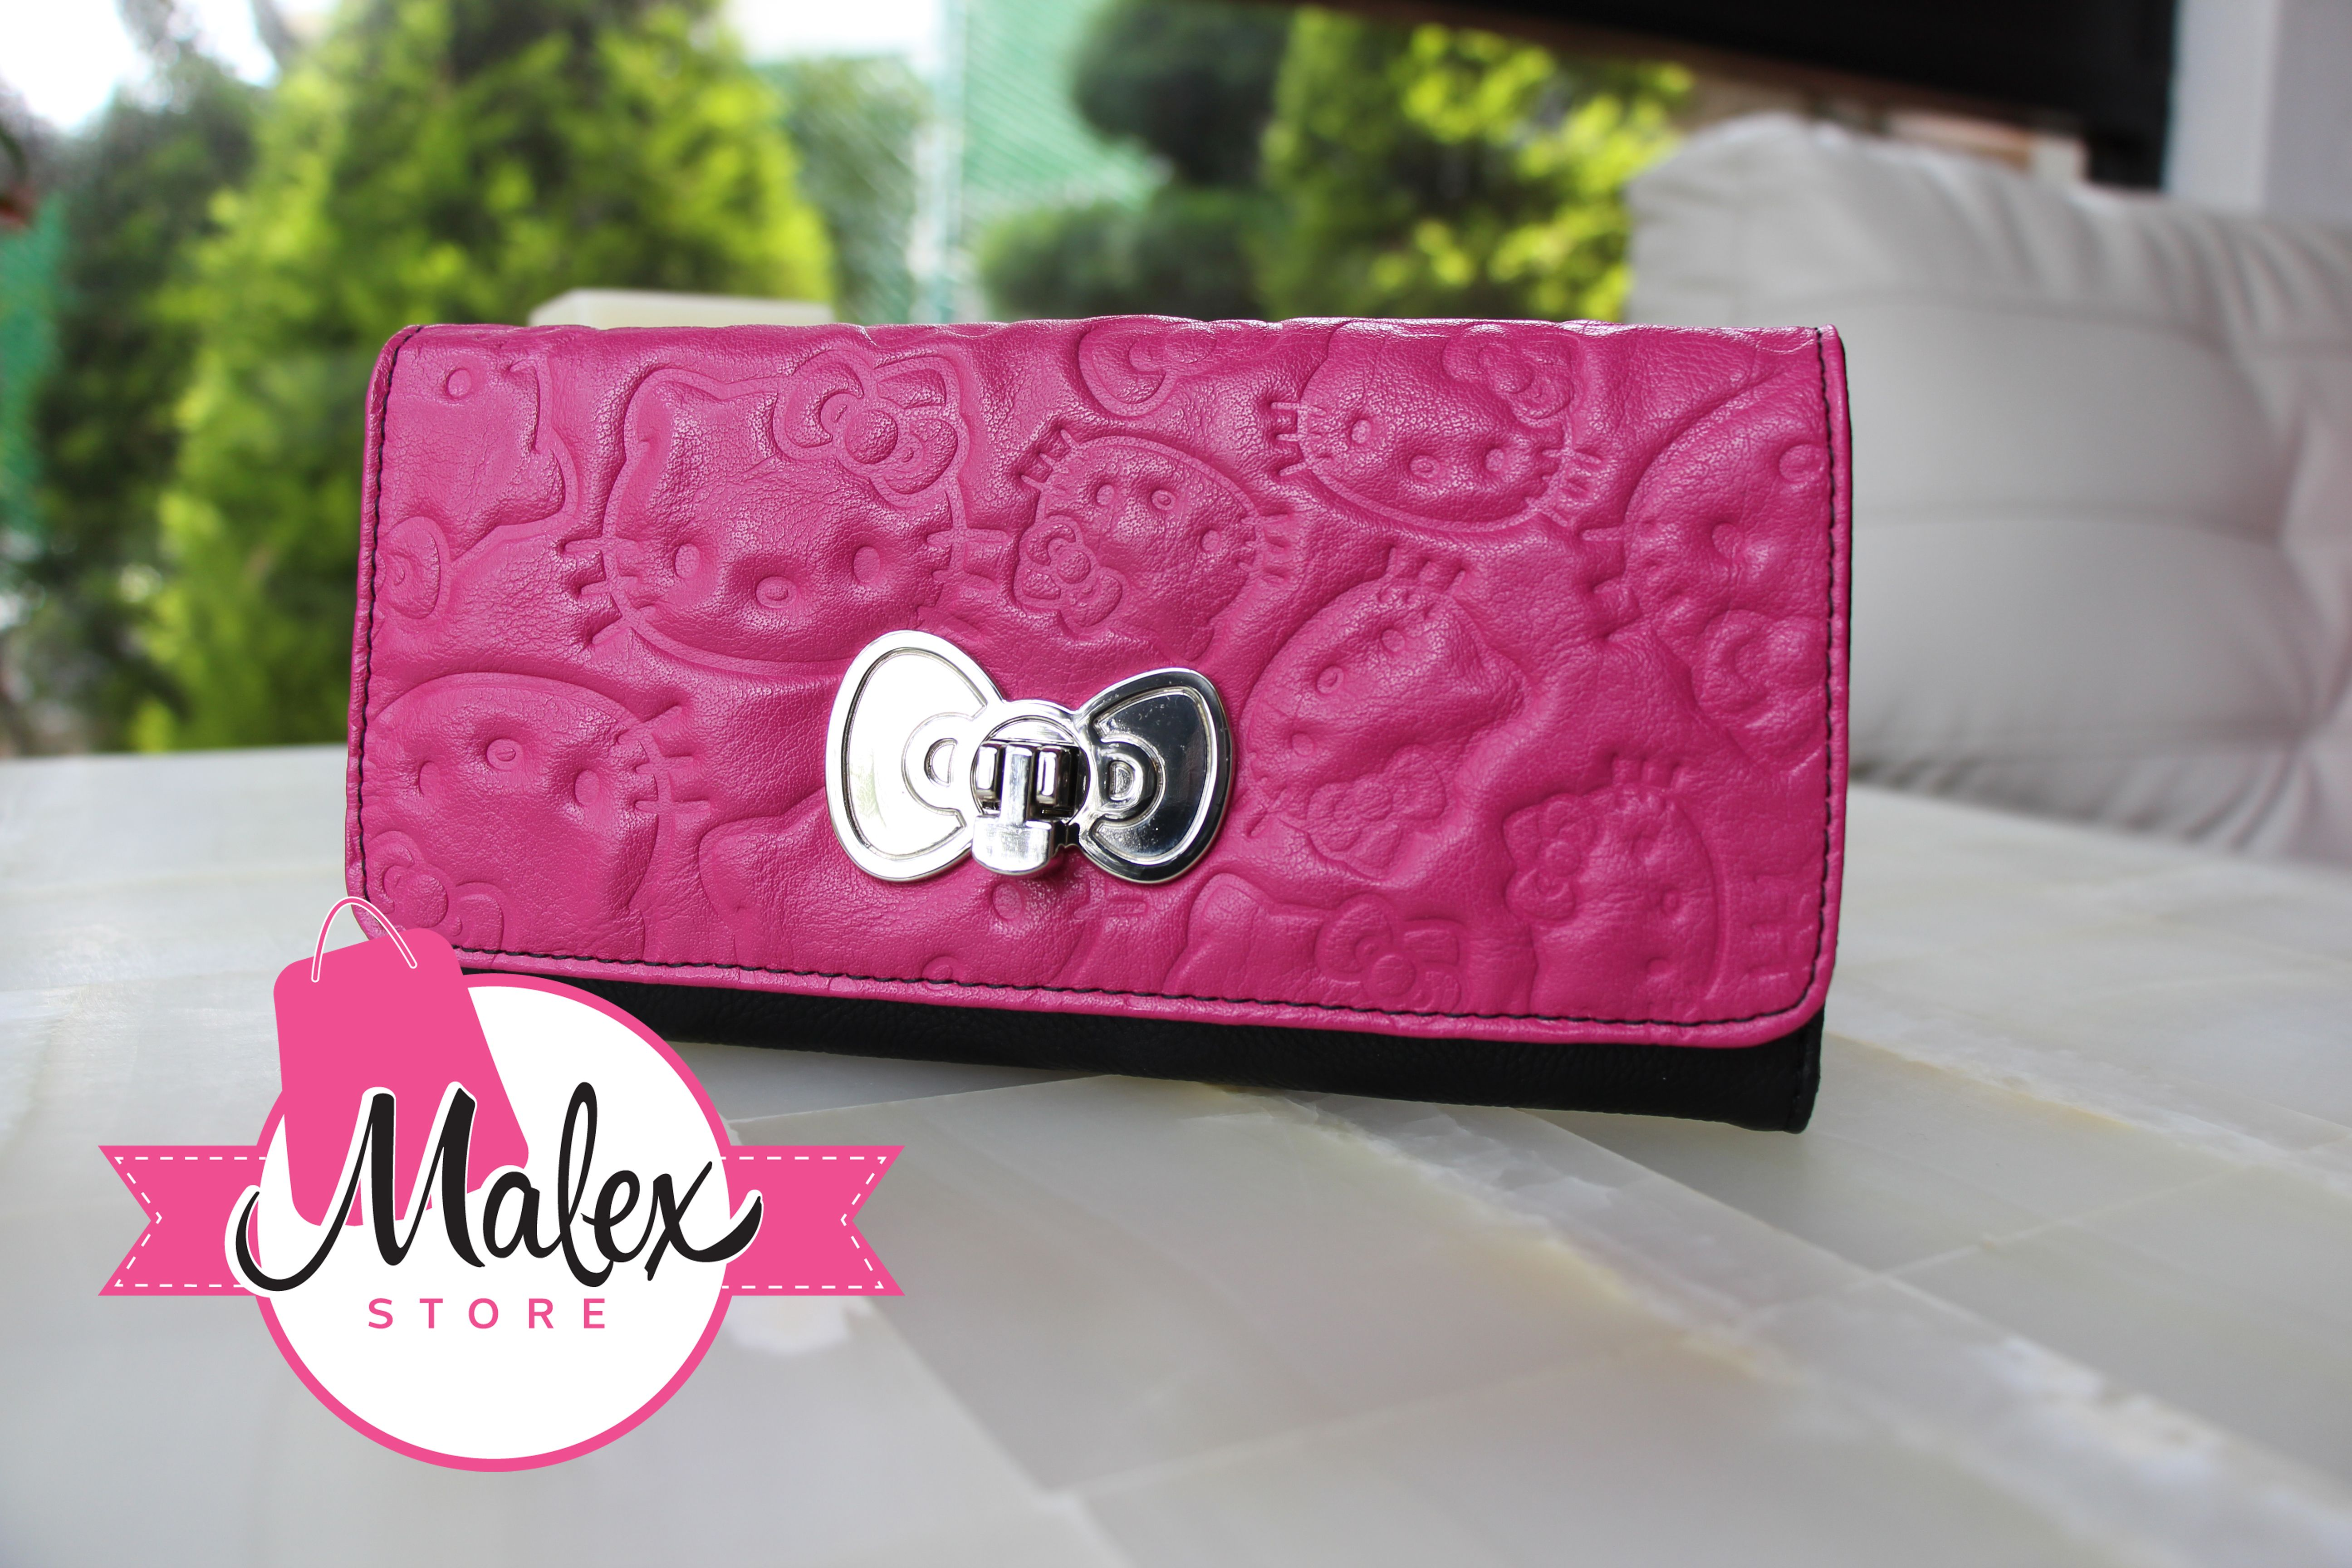 bc655877f Cartera Loungefly Color Rosa Con Caras Grabadas Hello Kitty. Precio:  $680.00  http://www.malexstore.mx/index.php?route=product/product&path=73_57&product_id=  ...